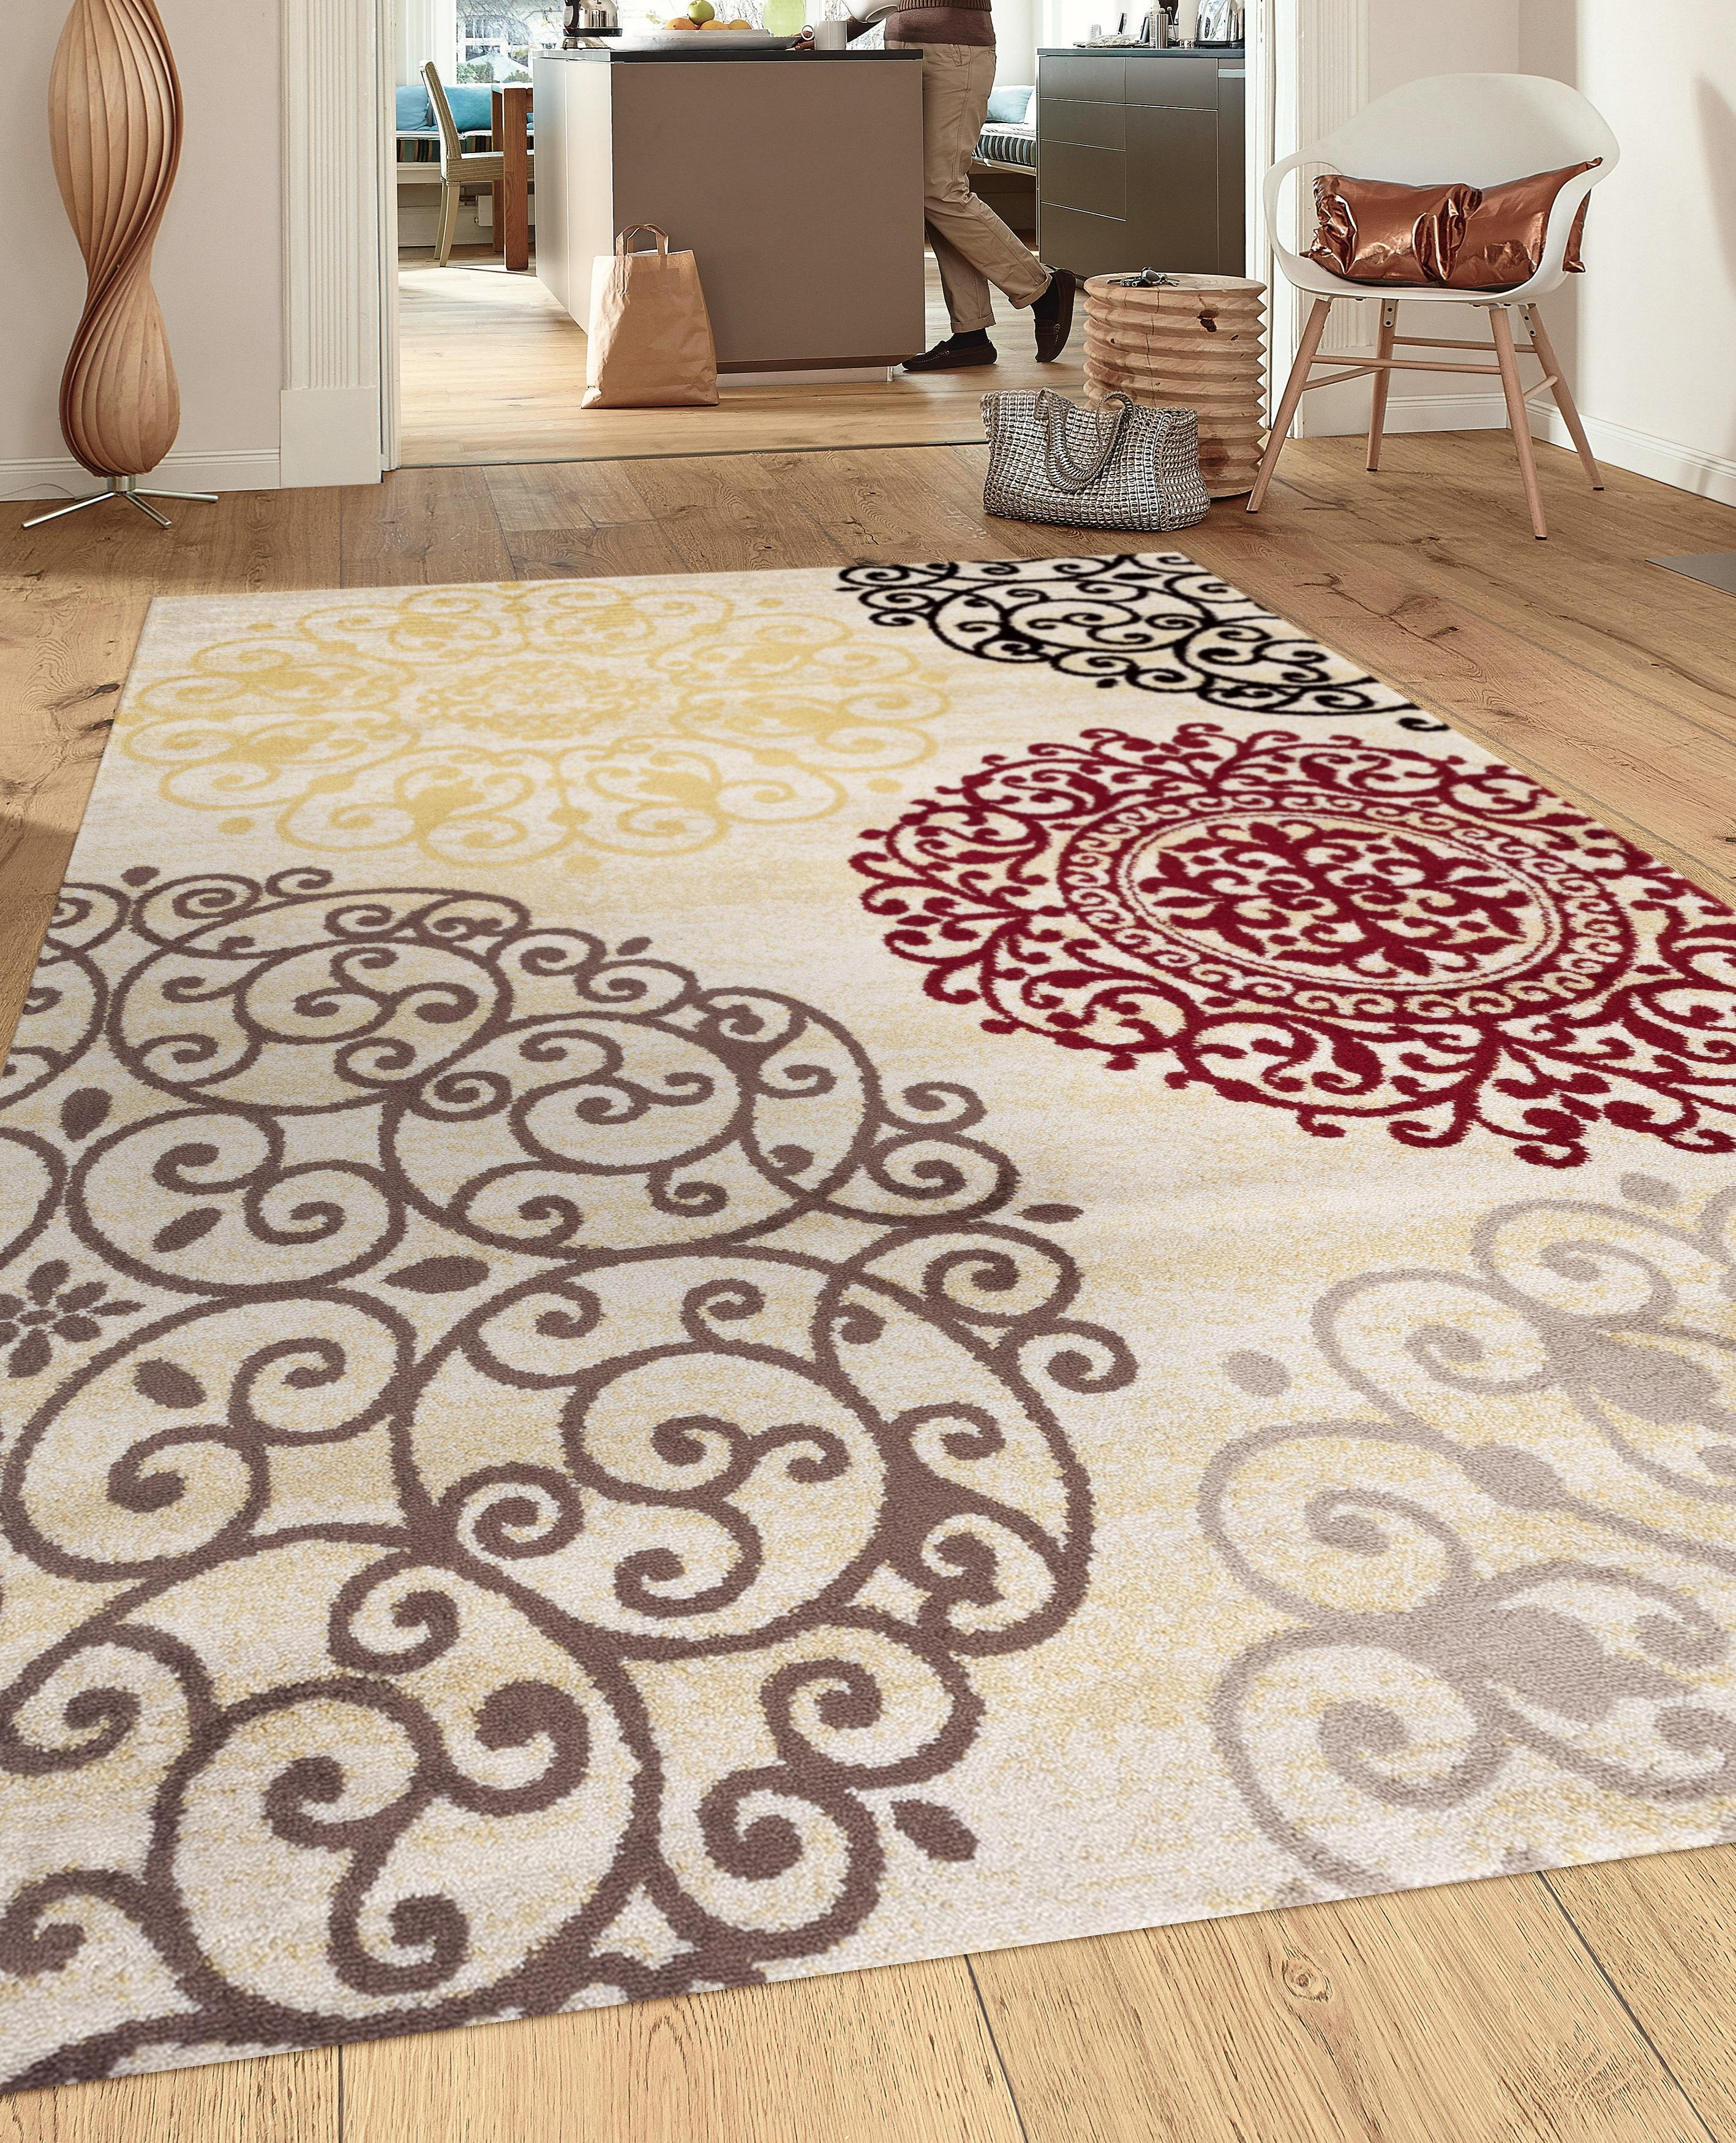 Contemporary Kitchen Rugs: Amazon.com: Rugshop Contemporary Modern Floral Indoor Soft